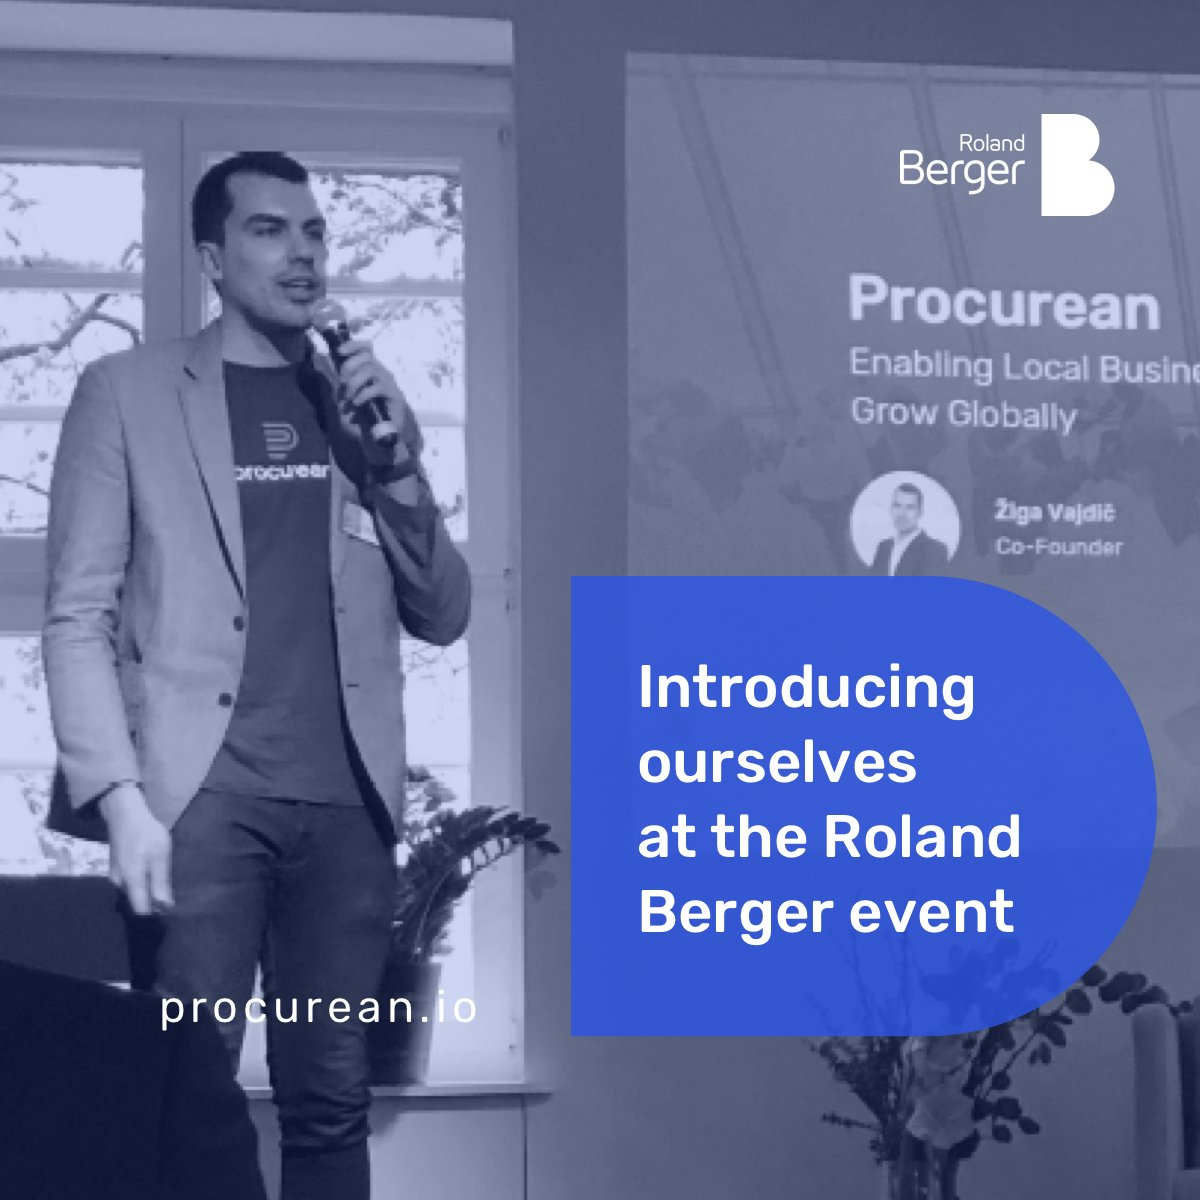 As an ambitious #startup in the procurement industry, we were recently invited to one of the leading consultancies in the world - @RolandBerger to pitch our business at their digital procurement lab in Berlin in front of CPOs from companies such as @amazon, Metro and @Philips 🇩🇪 https://t.co/ETQKopjyyB